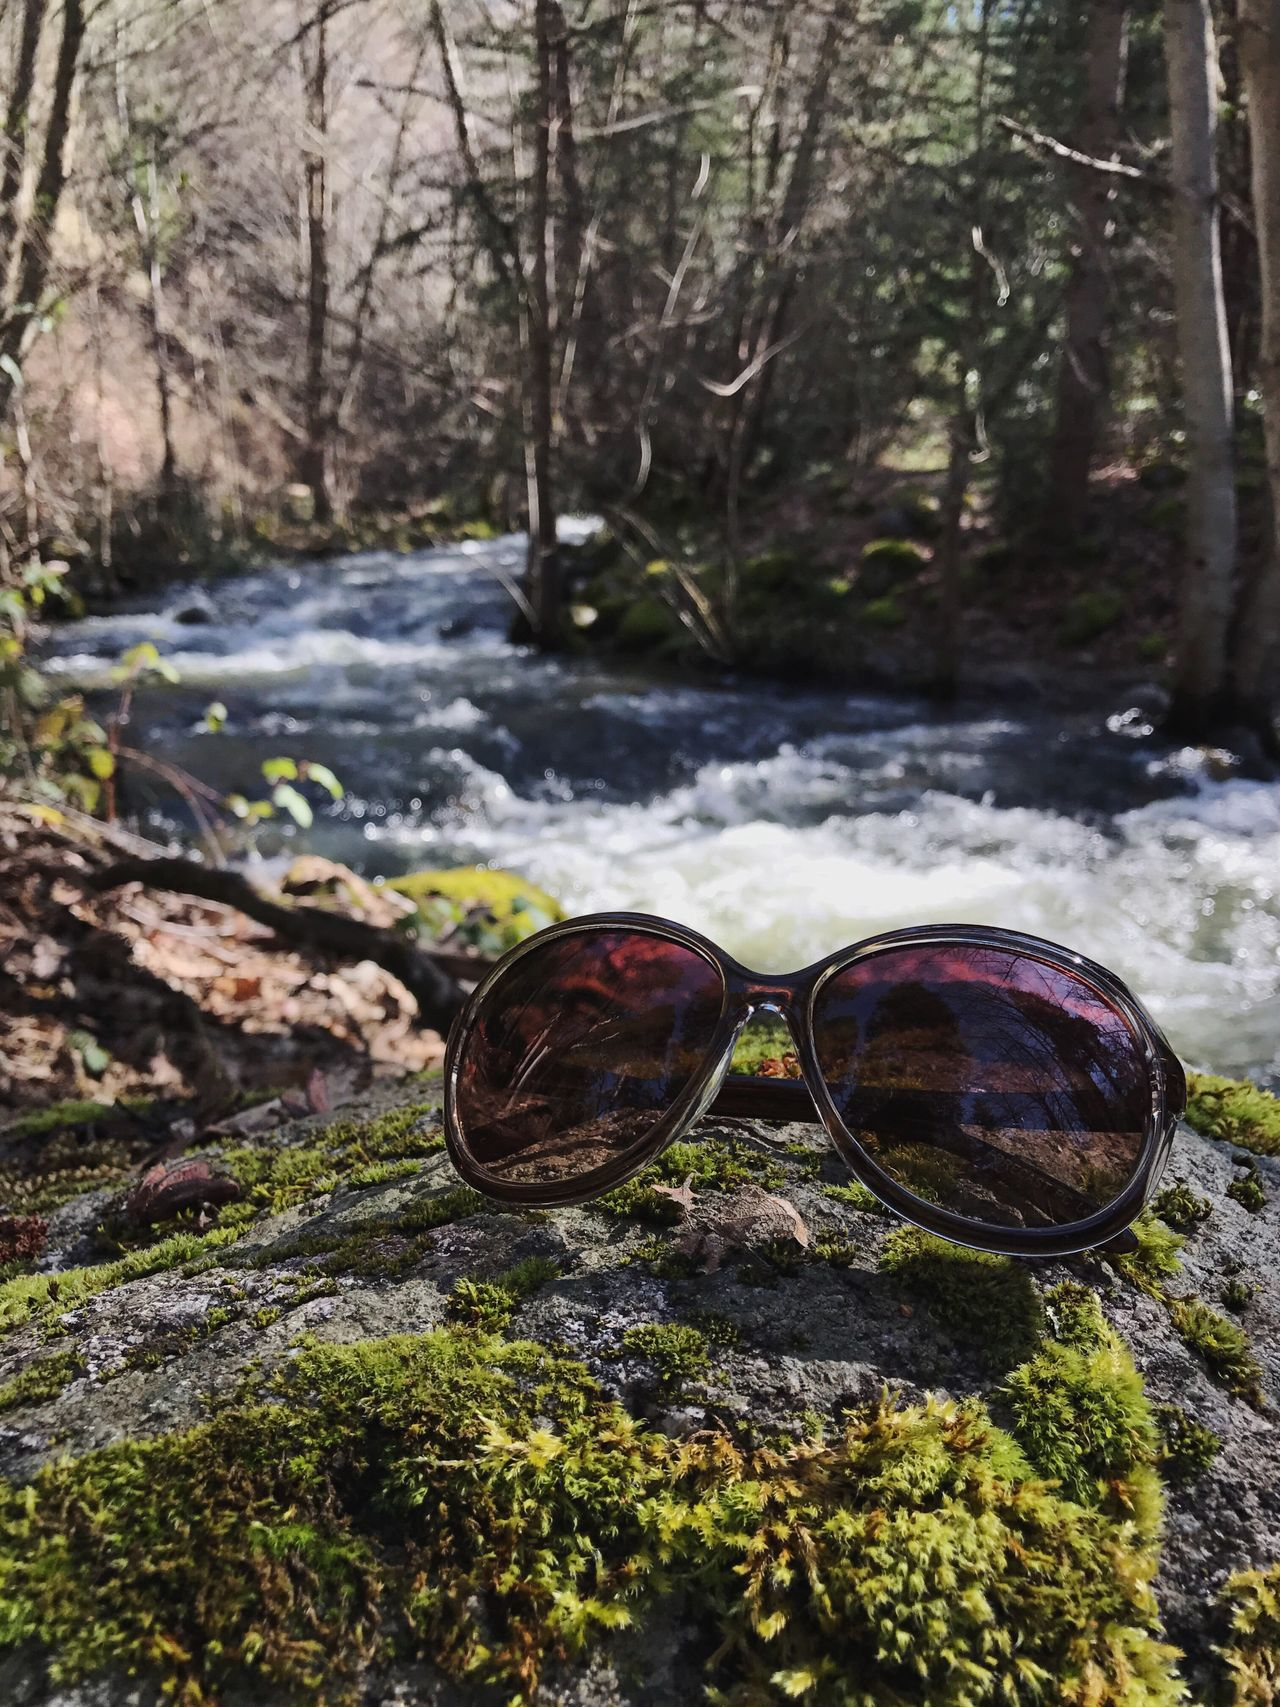 Nature No People Outdoors Tree Tranquility Water Day Close-up Sunglasses Moss Ashland Oregon Lithia Park Sunglasses On Rock Green Tones Creekside